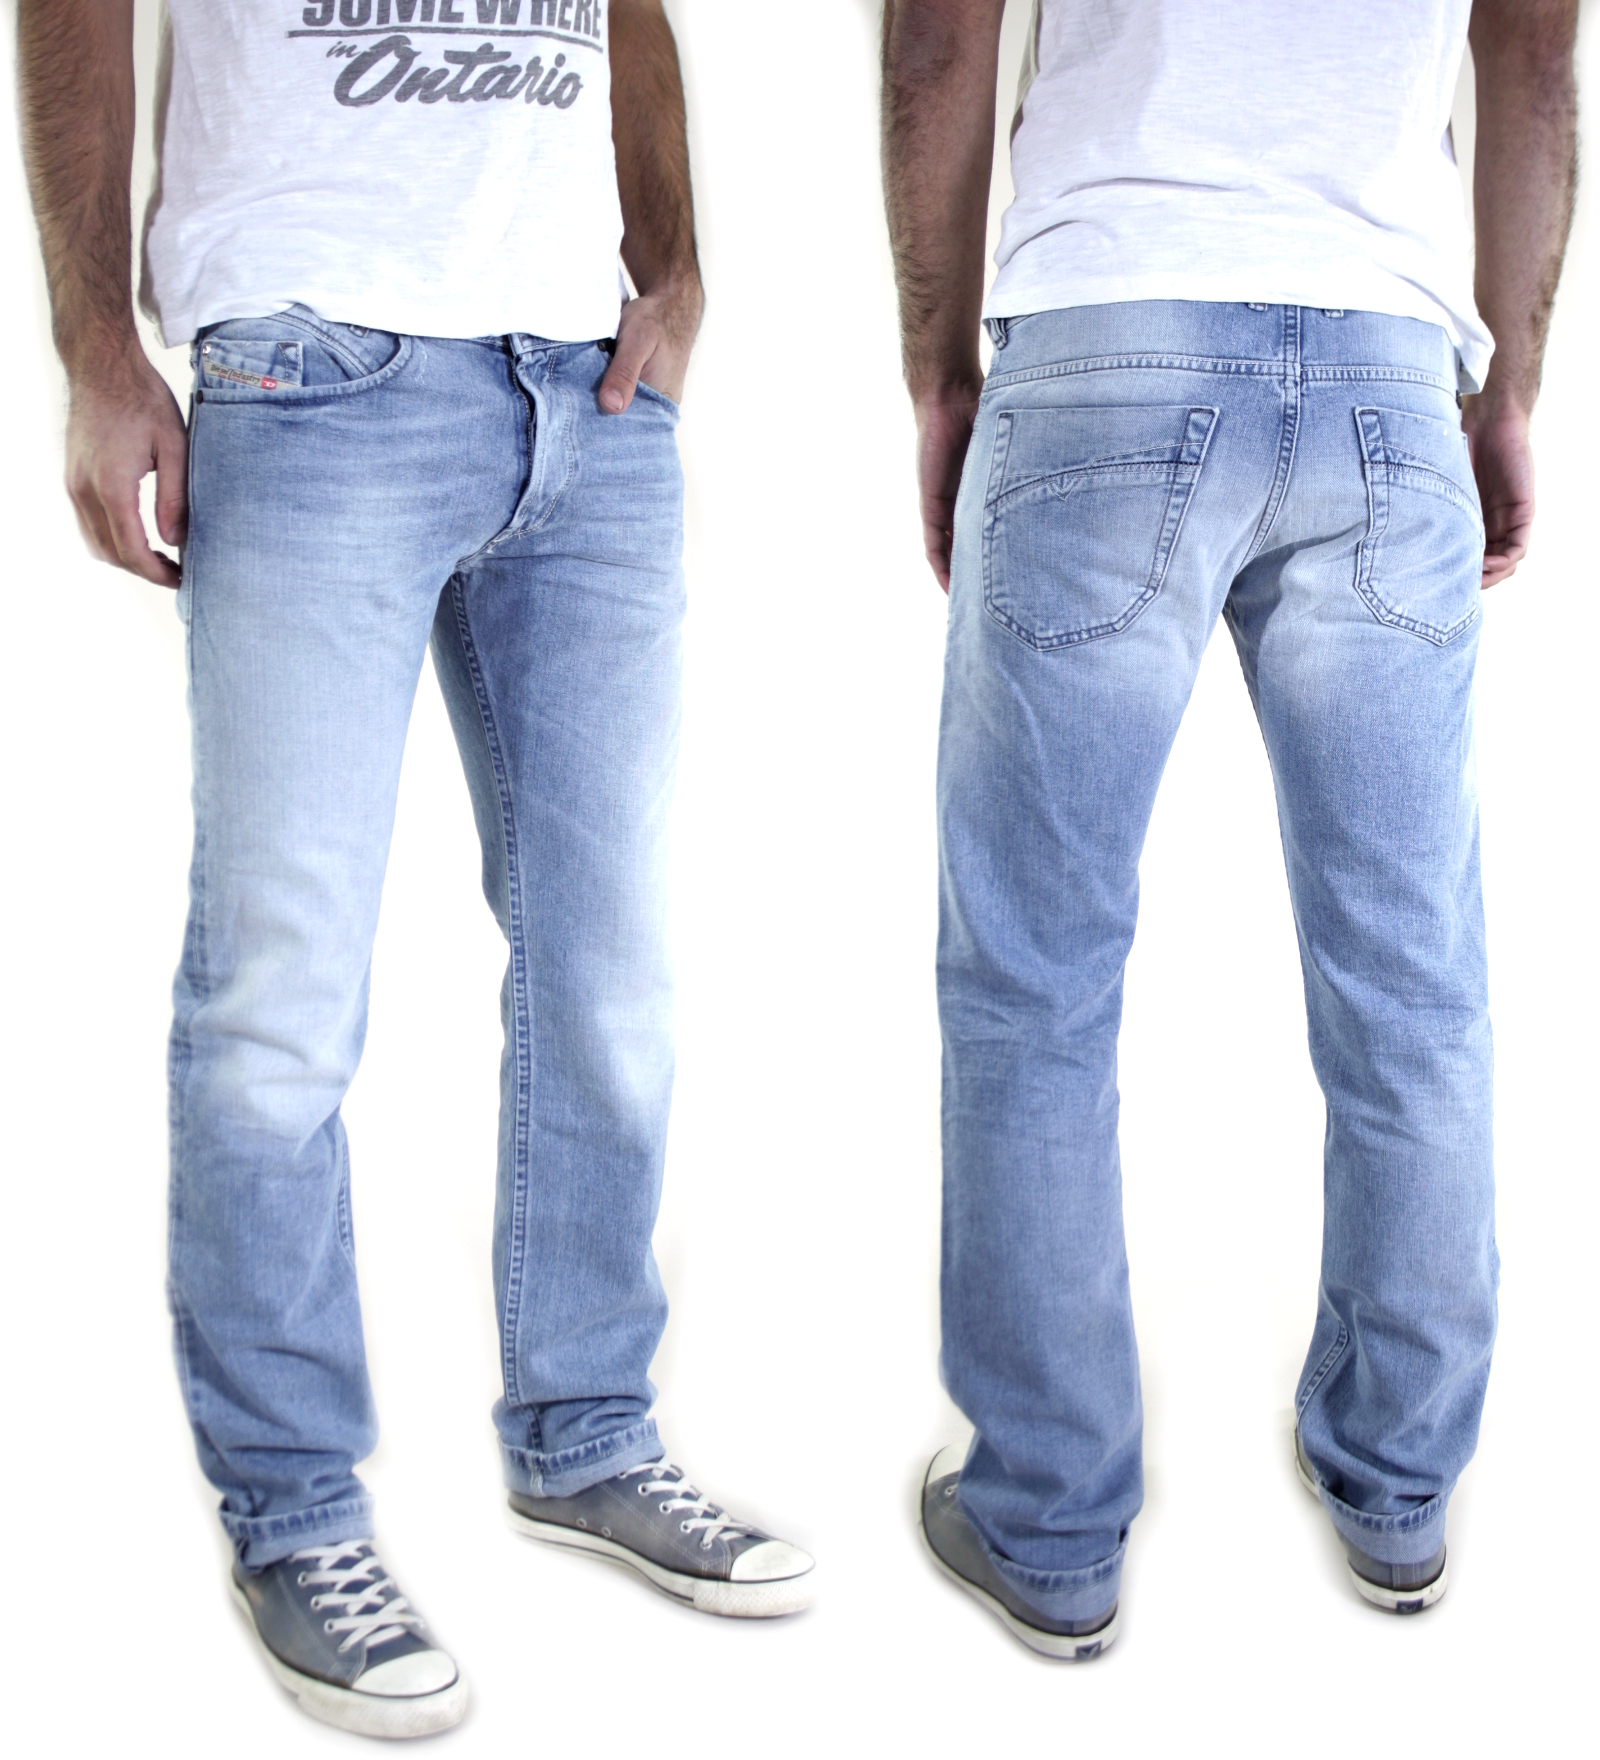 neu diesel herren jeans sale 18 verschiedene modelle slim. Black Bedroom Furniture Sets. Home Design Ideas